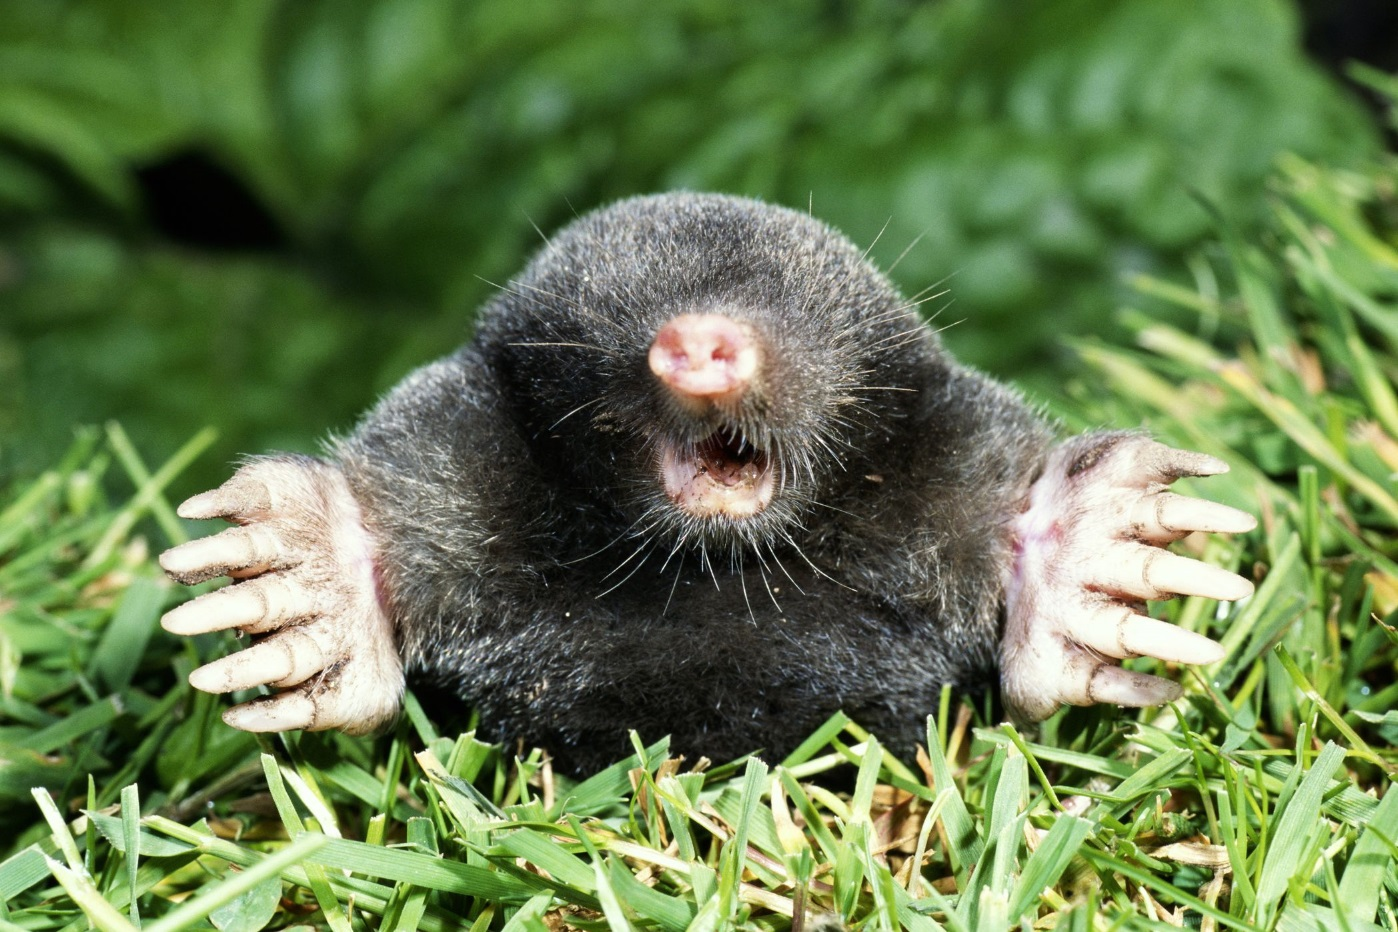 Image of a mole commonly found around homes